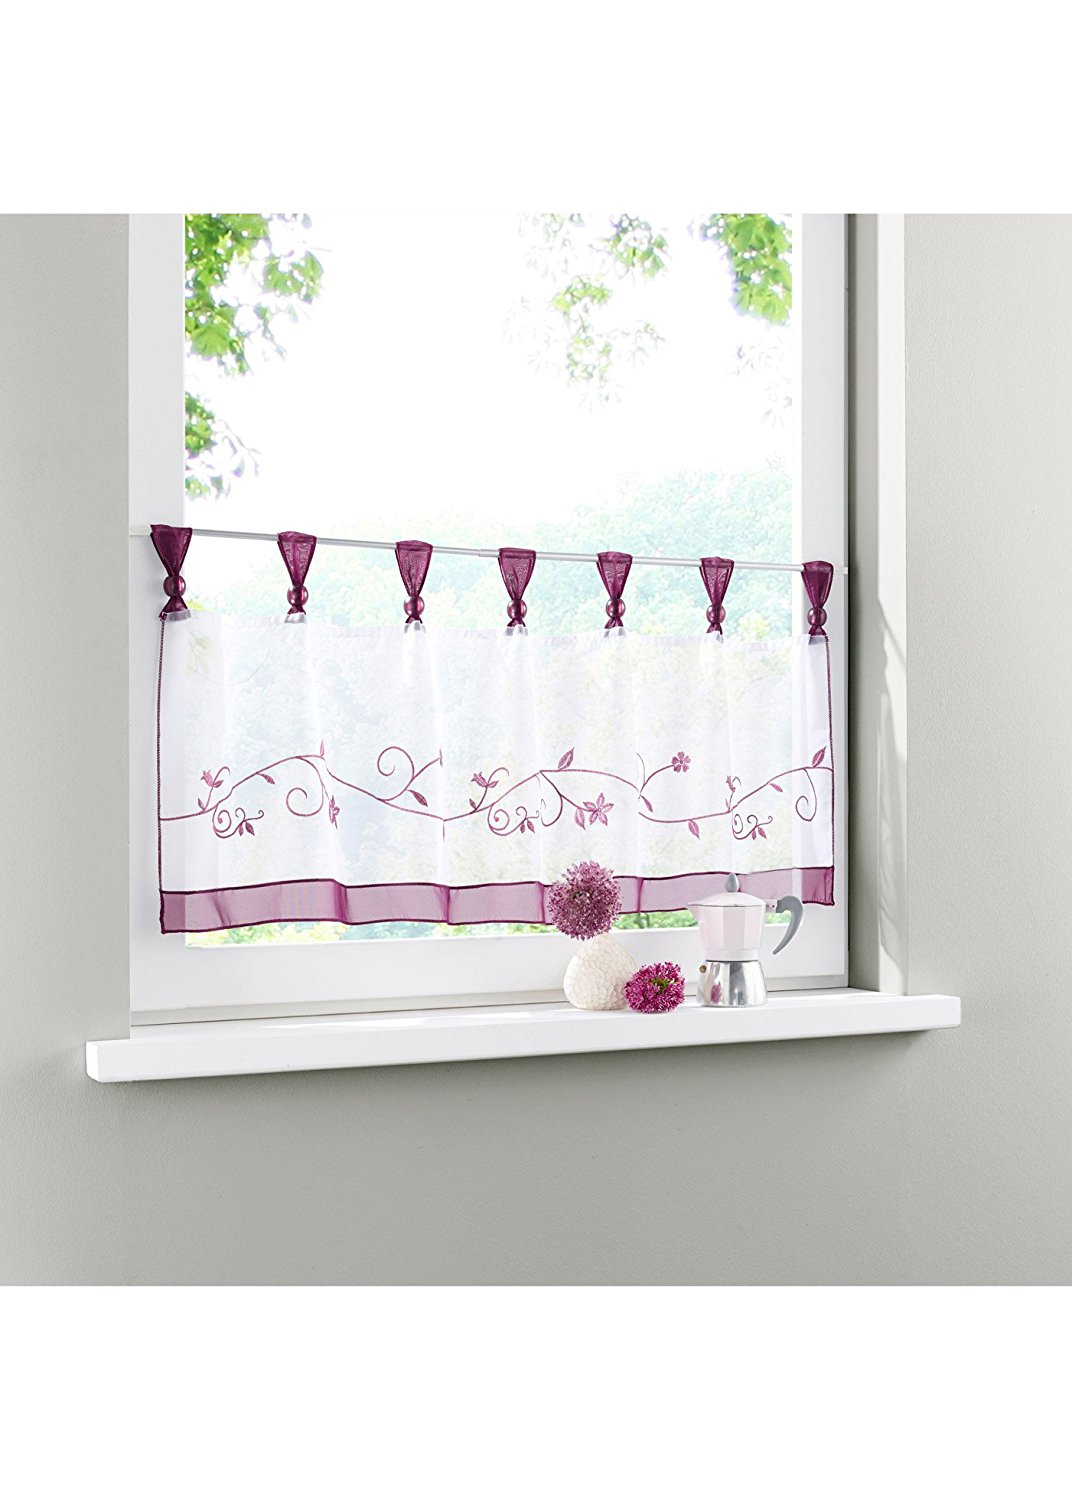 "Uphome 1pcs Cute Embroidered Floral Window Tier Curtain - Kitchen Tab Top Semi Sheer Curtain (48""W x 18""H, Purple)"